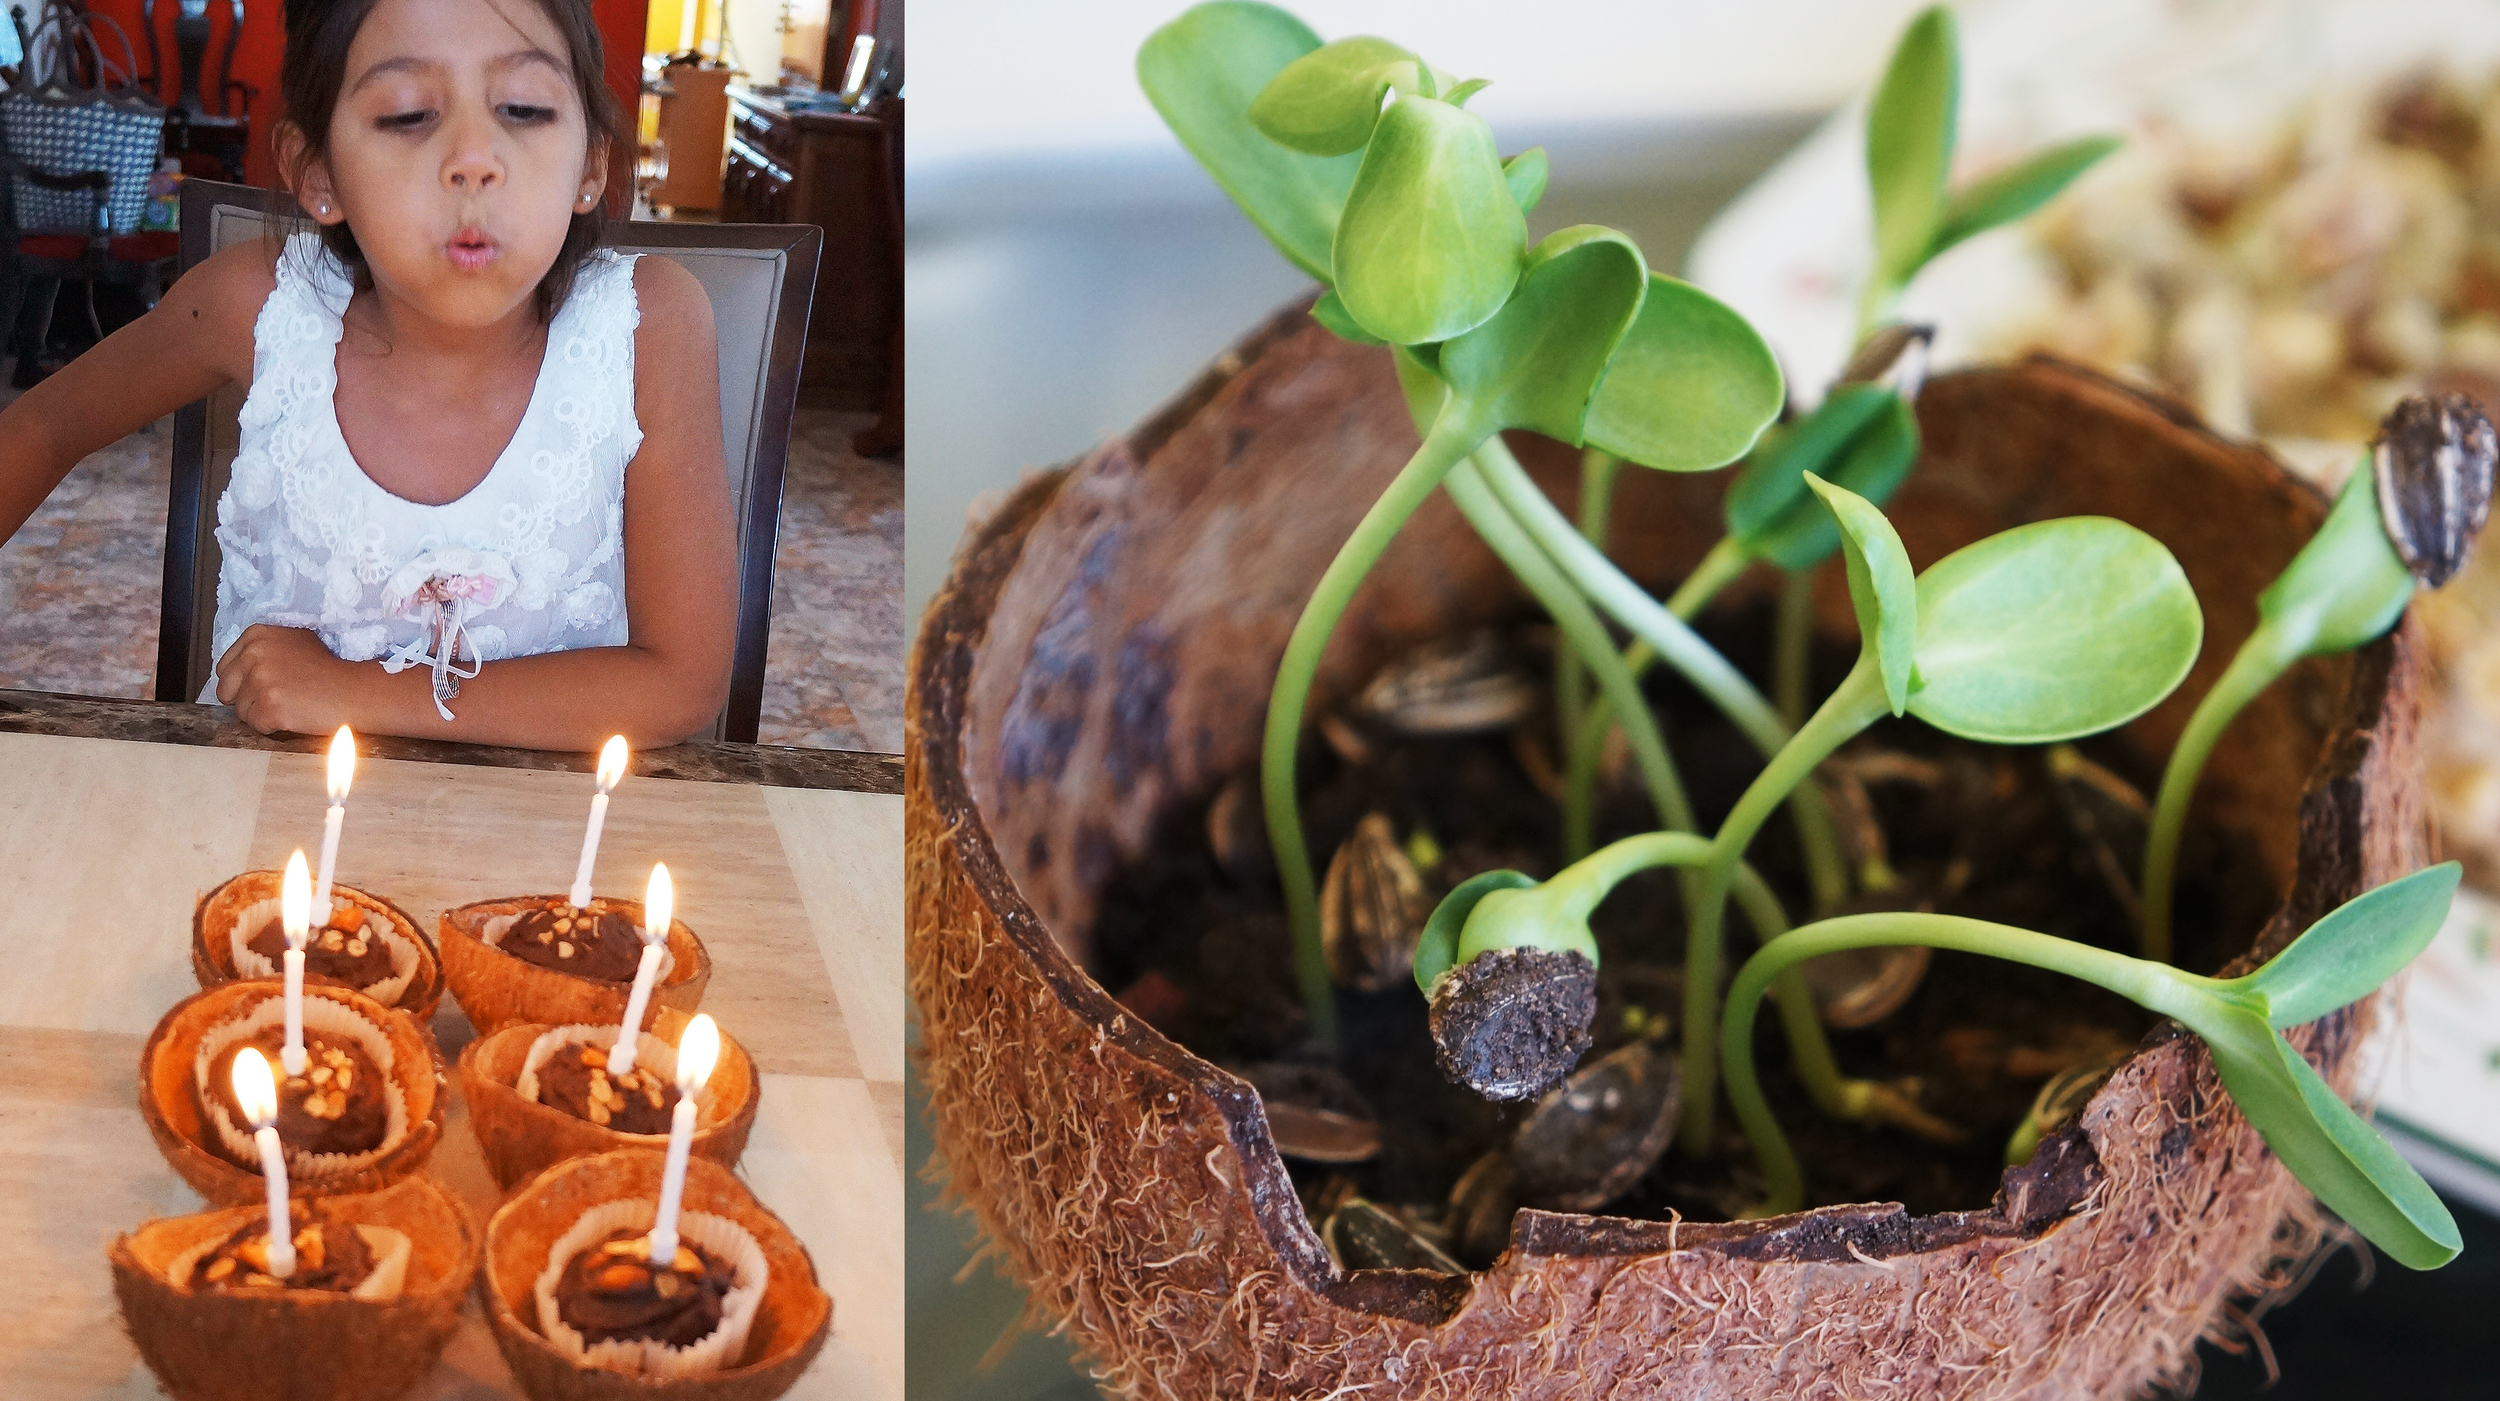 Using dried shells as bowls and pots for seedlings and sprouts